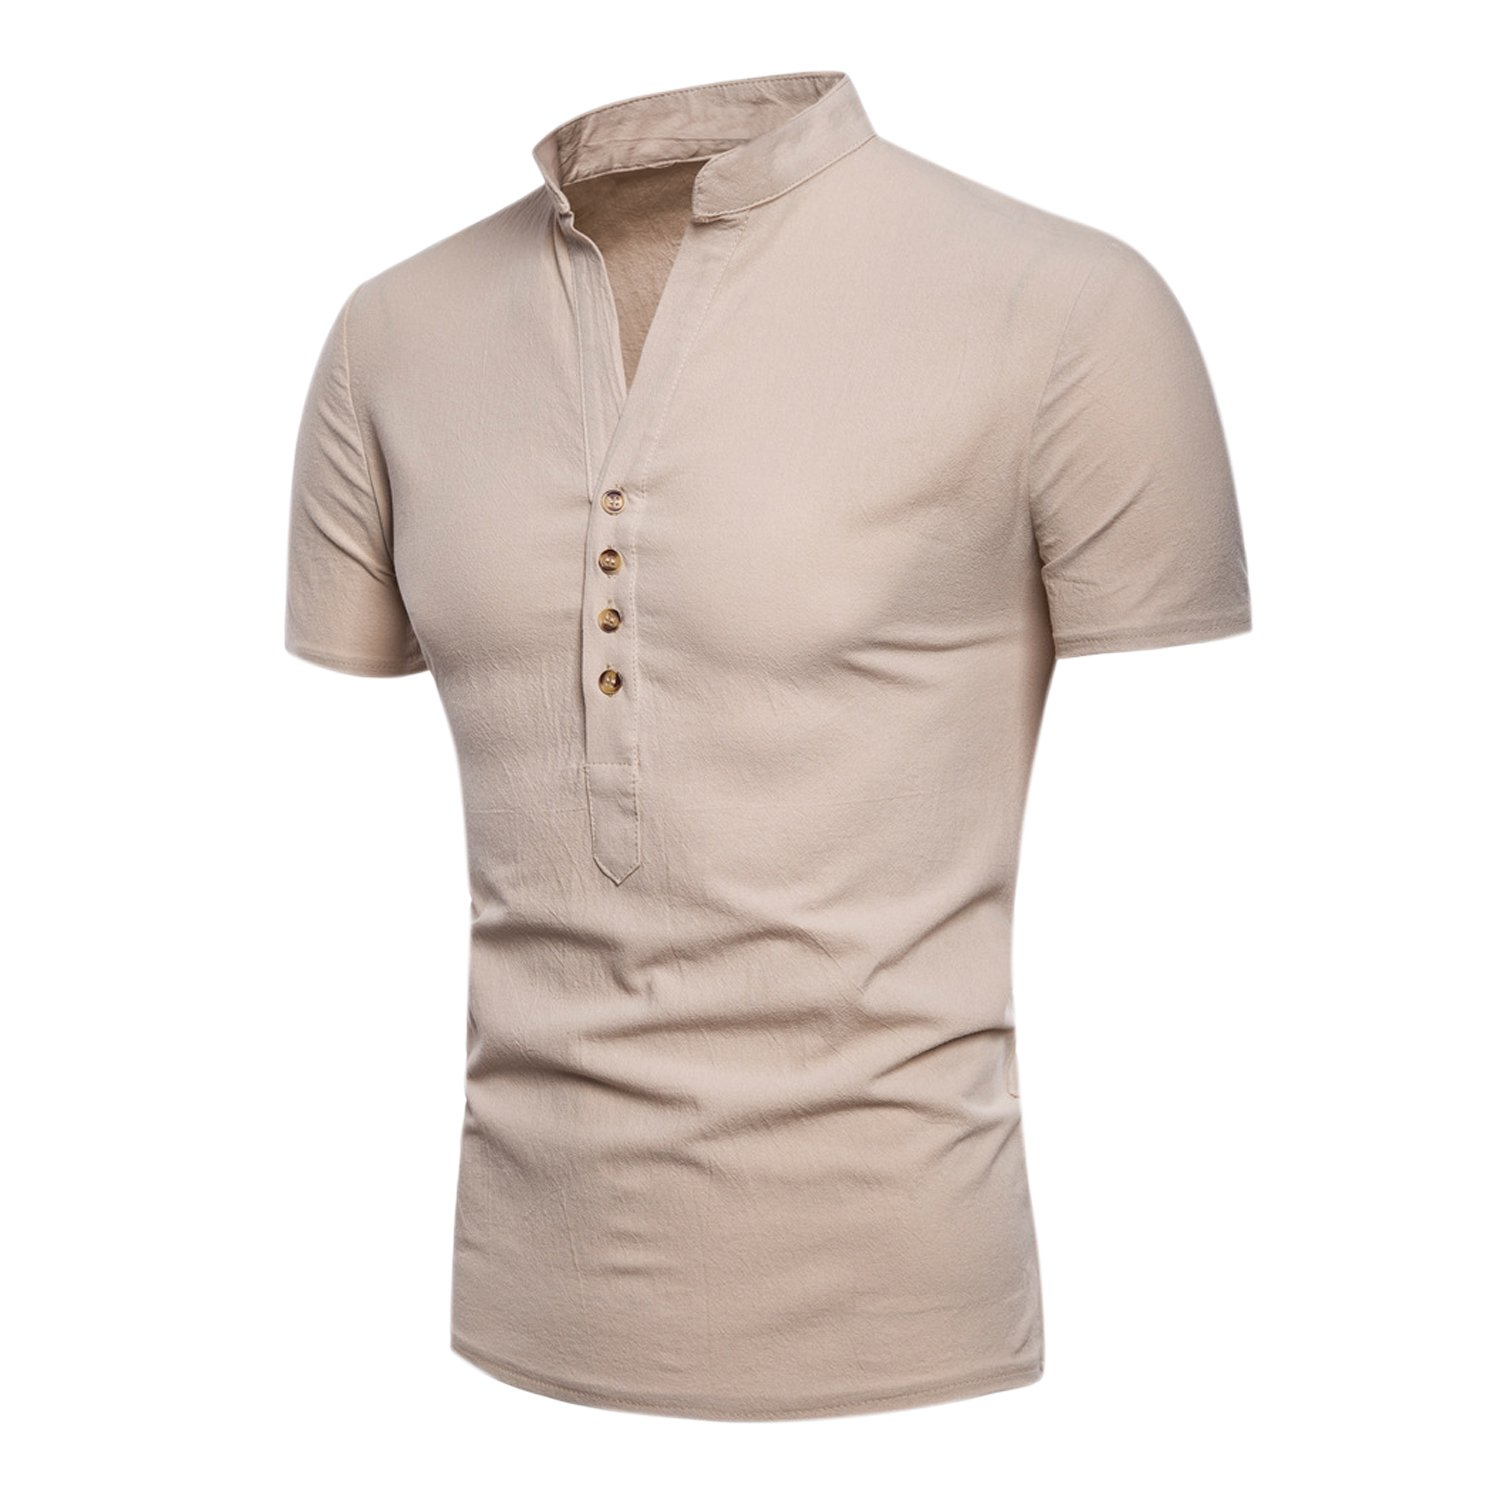 Katesid Mens Summer Solid Color Casual Fit Button Down Shirts Short Sleeve Henley Shirts Dress Shirt